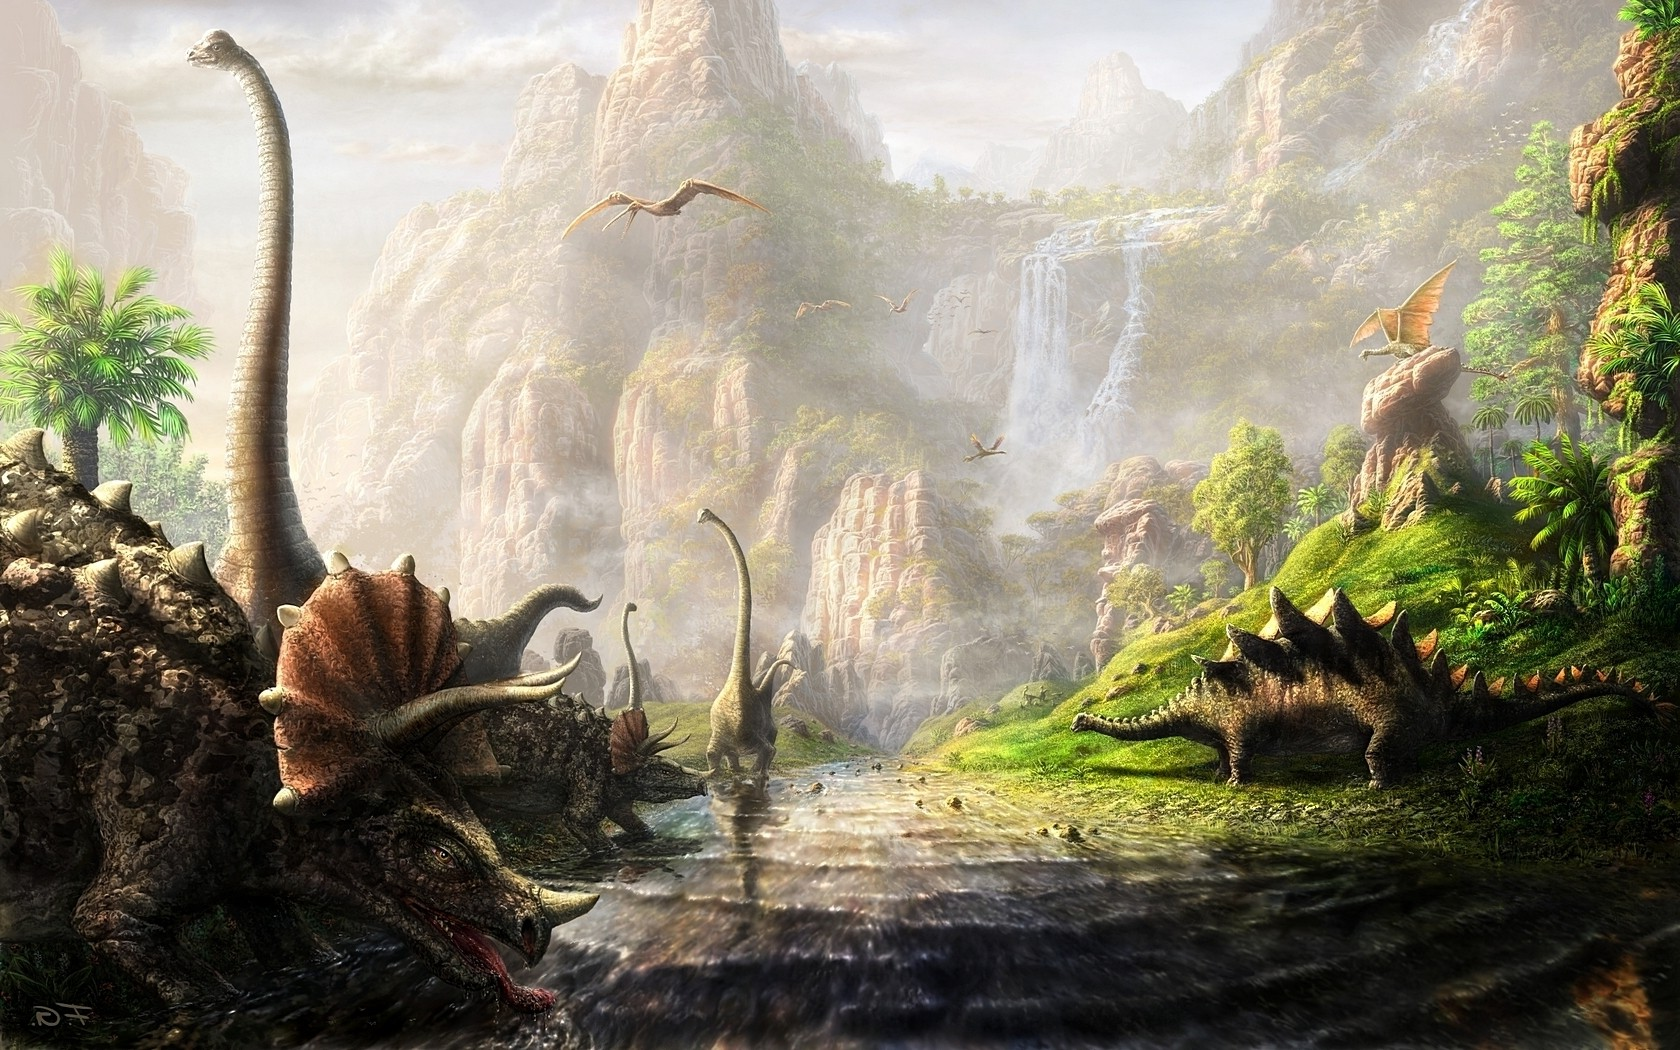 Chinese Calligraphy Wallpaper Hd Dinosaurs Fantasy Art Triceratops River Cliff